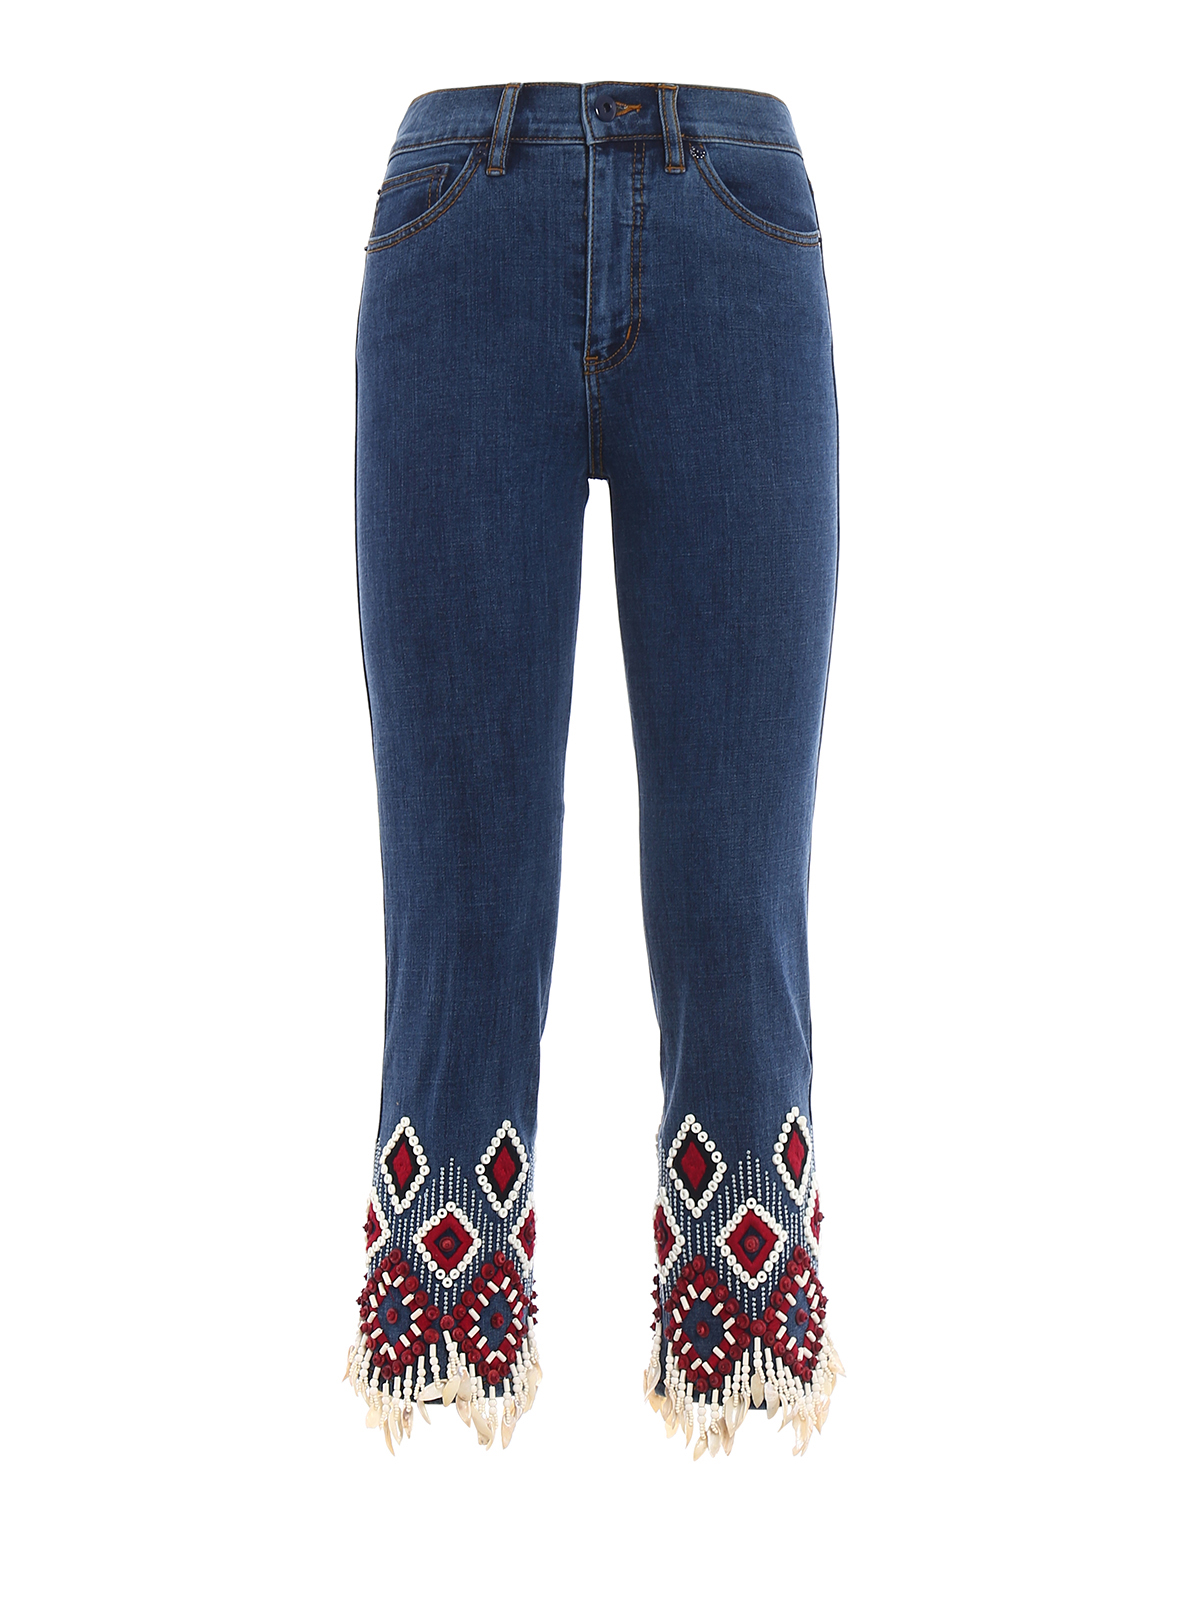 Mia embroidered cropped jeans by tory burch straight leg